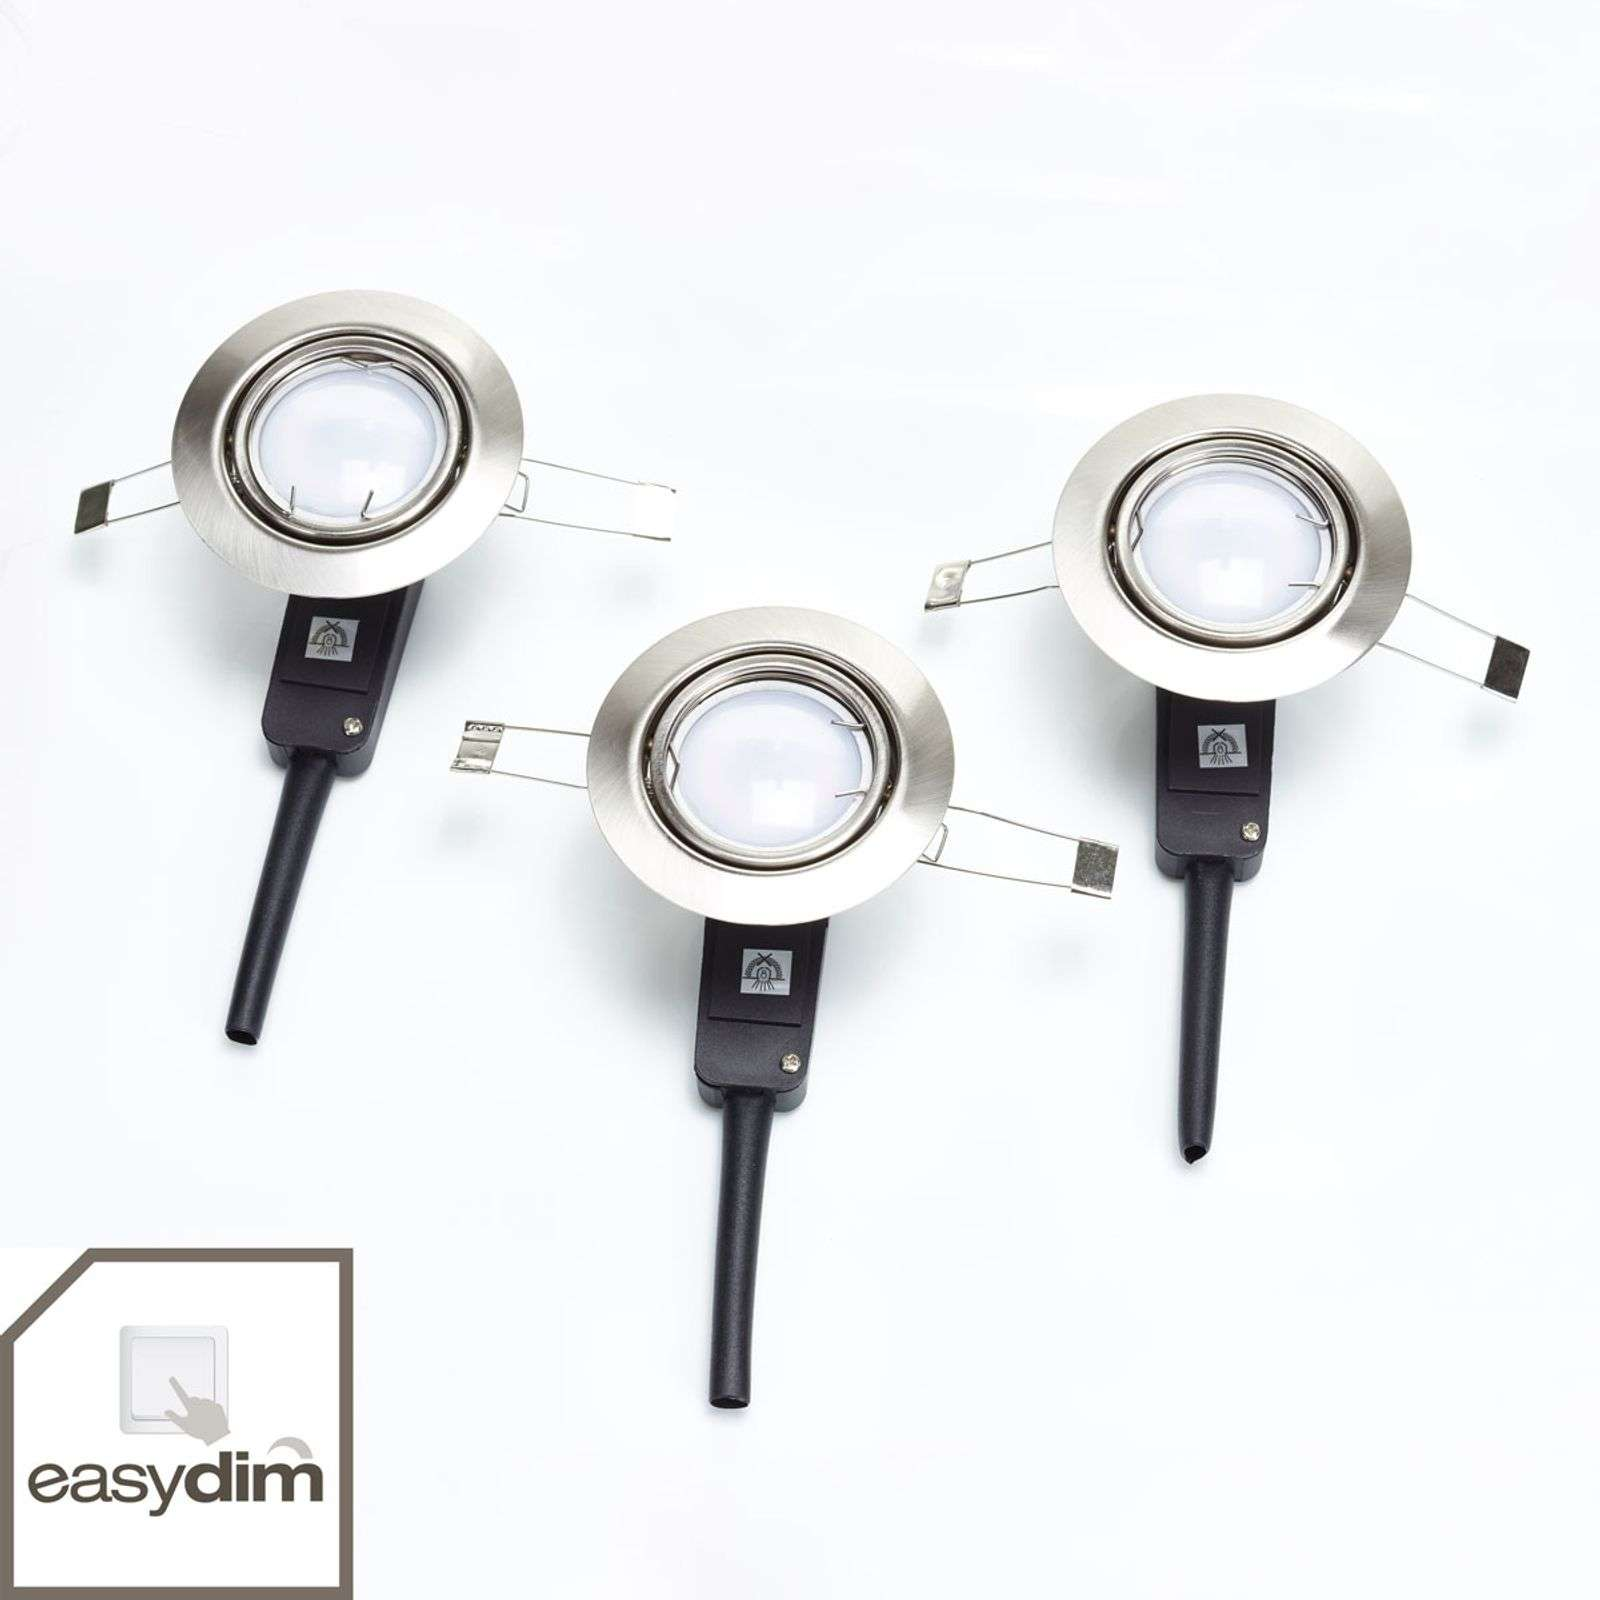 Lampada LED da incasso Honor easydim set da 3